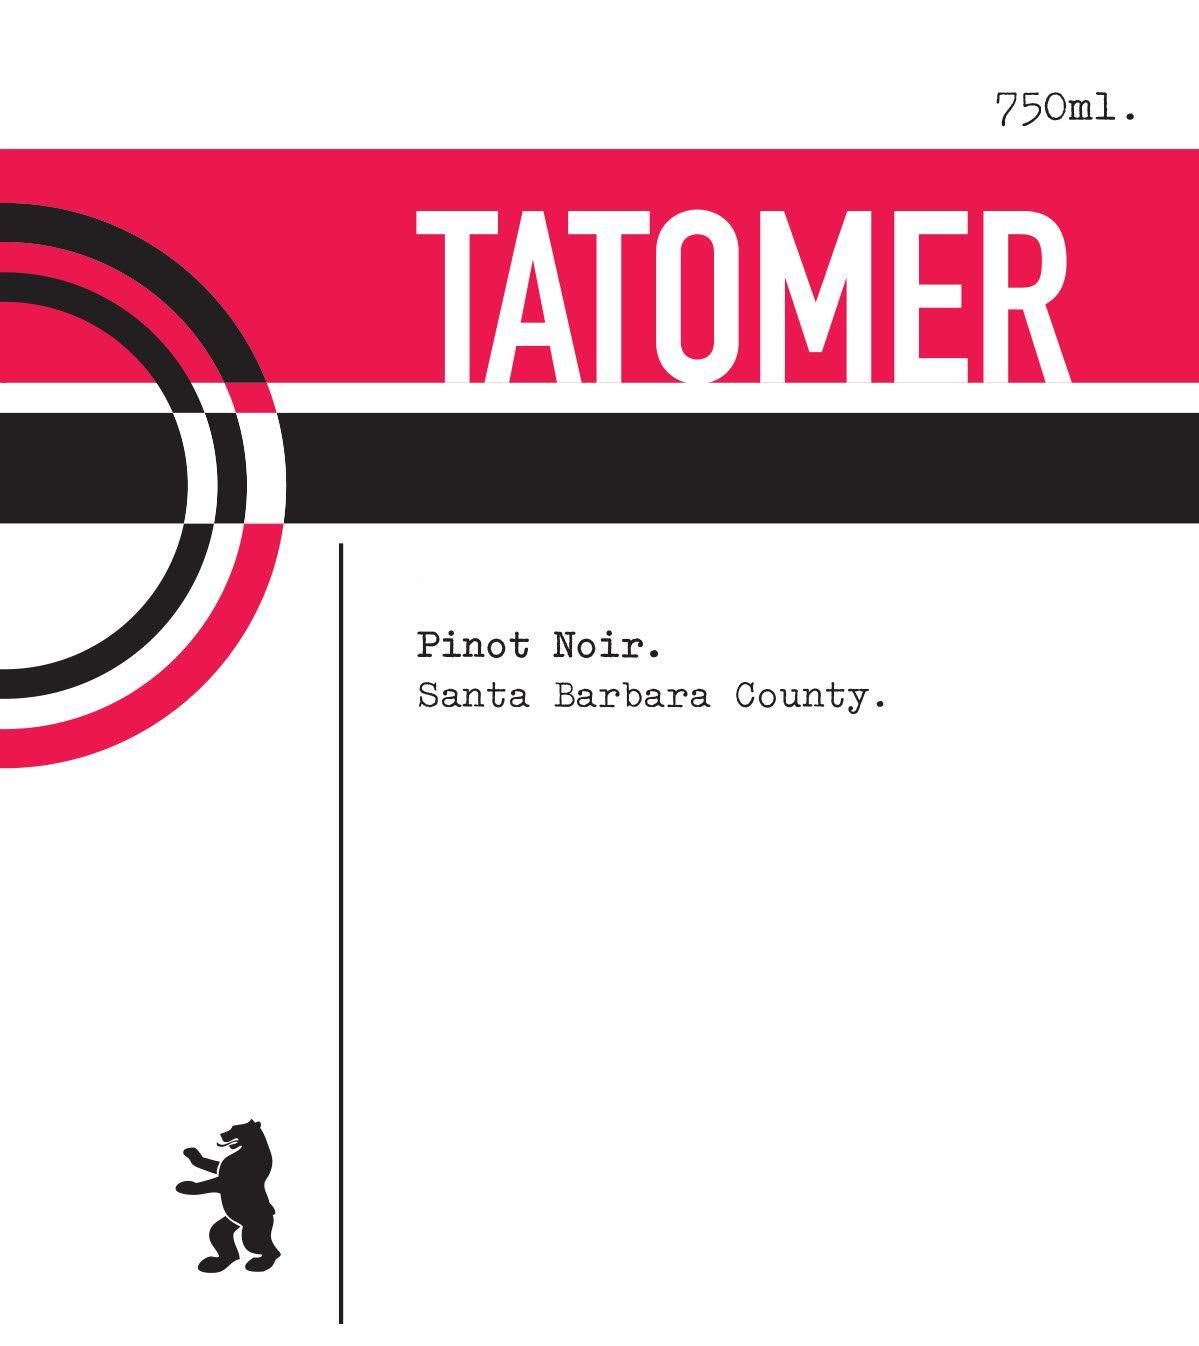 Tatomer Santa Barbara County Pinot Noir 2017  Front Label